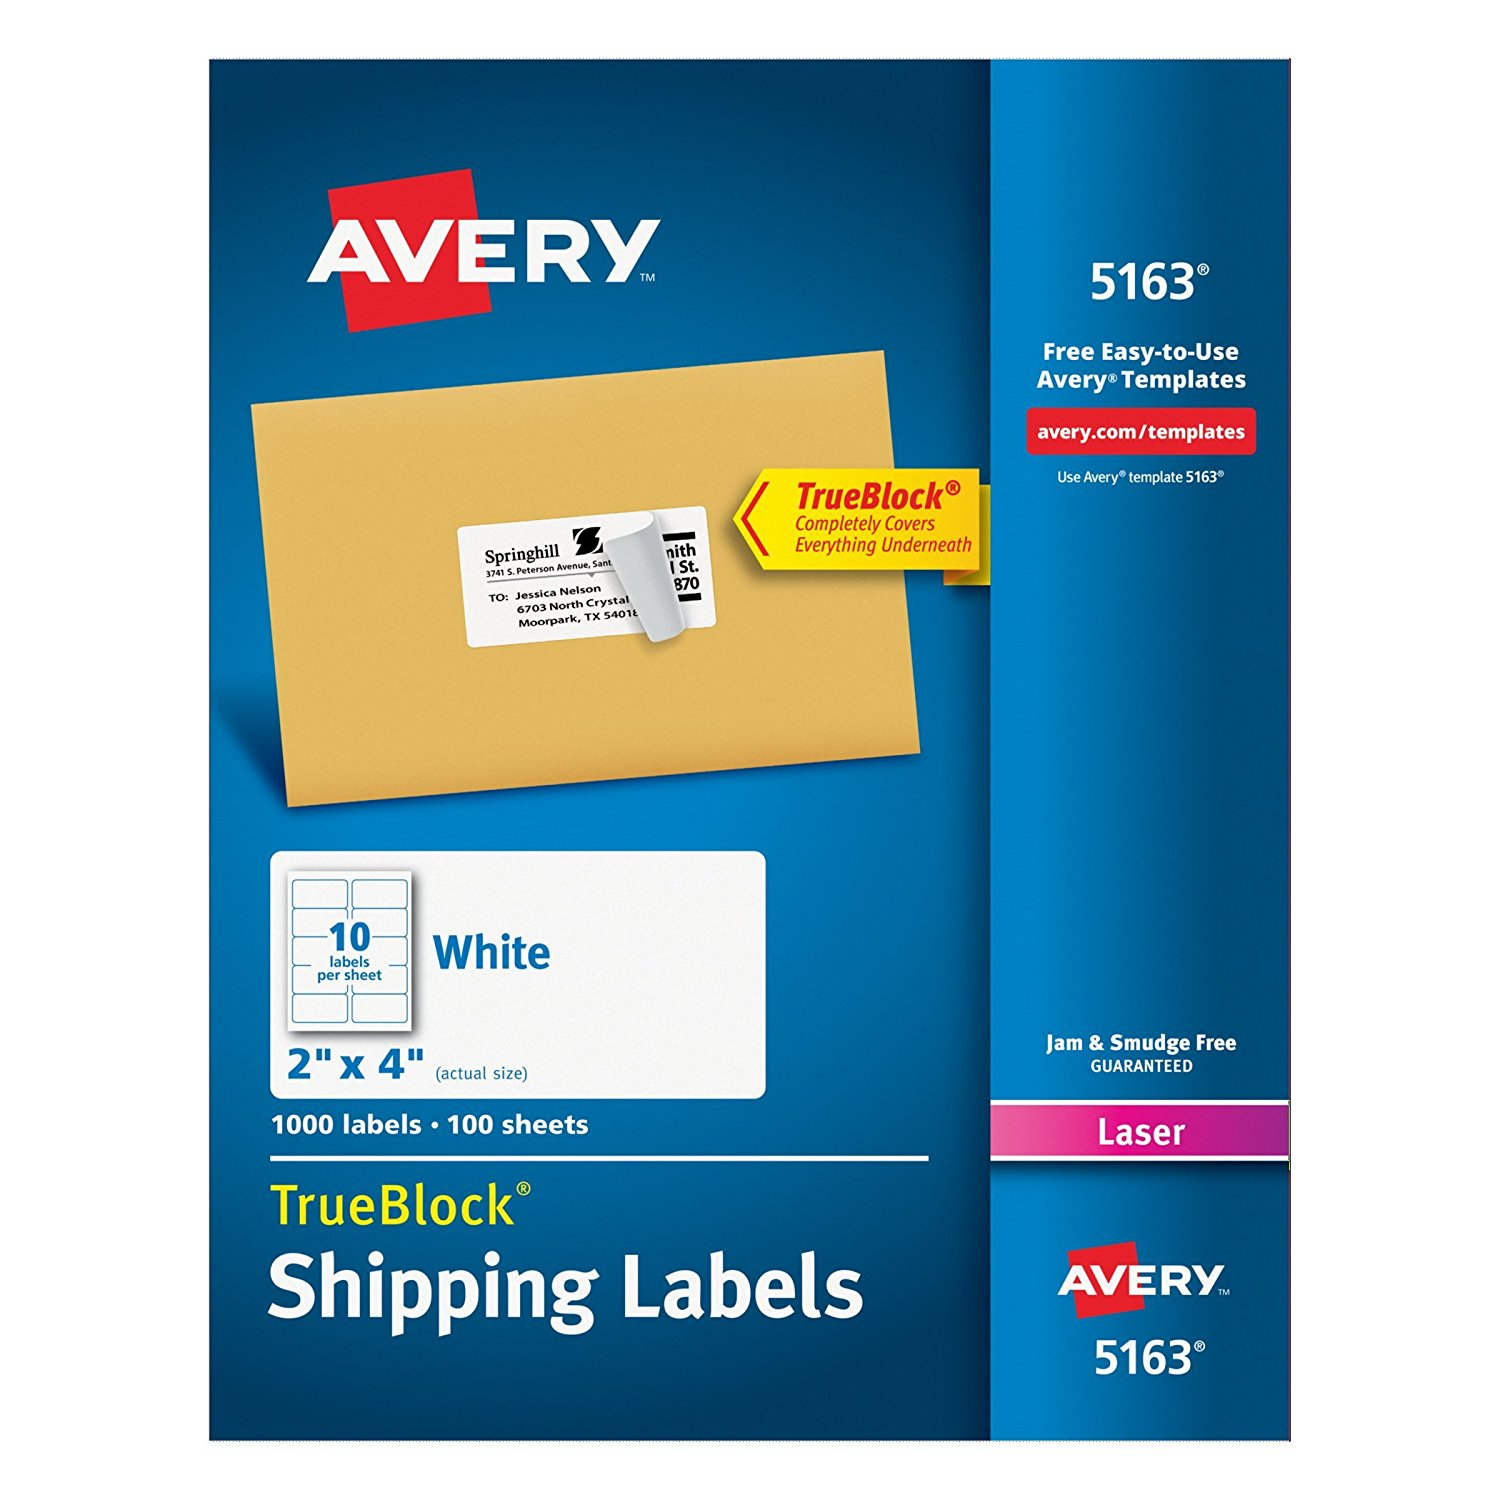 Mailing Labels with TrueBlock Technology for Laser Printe...